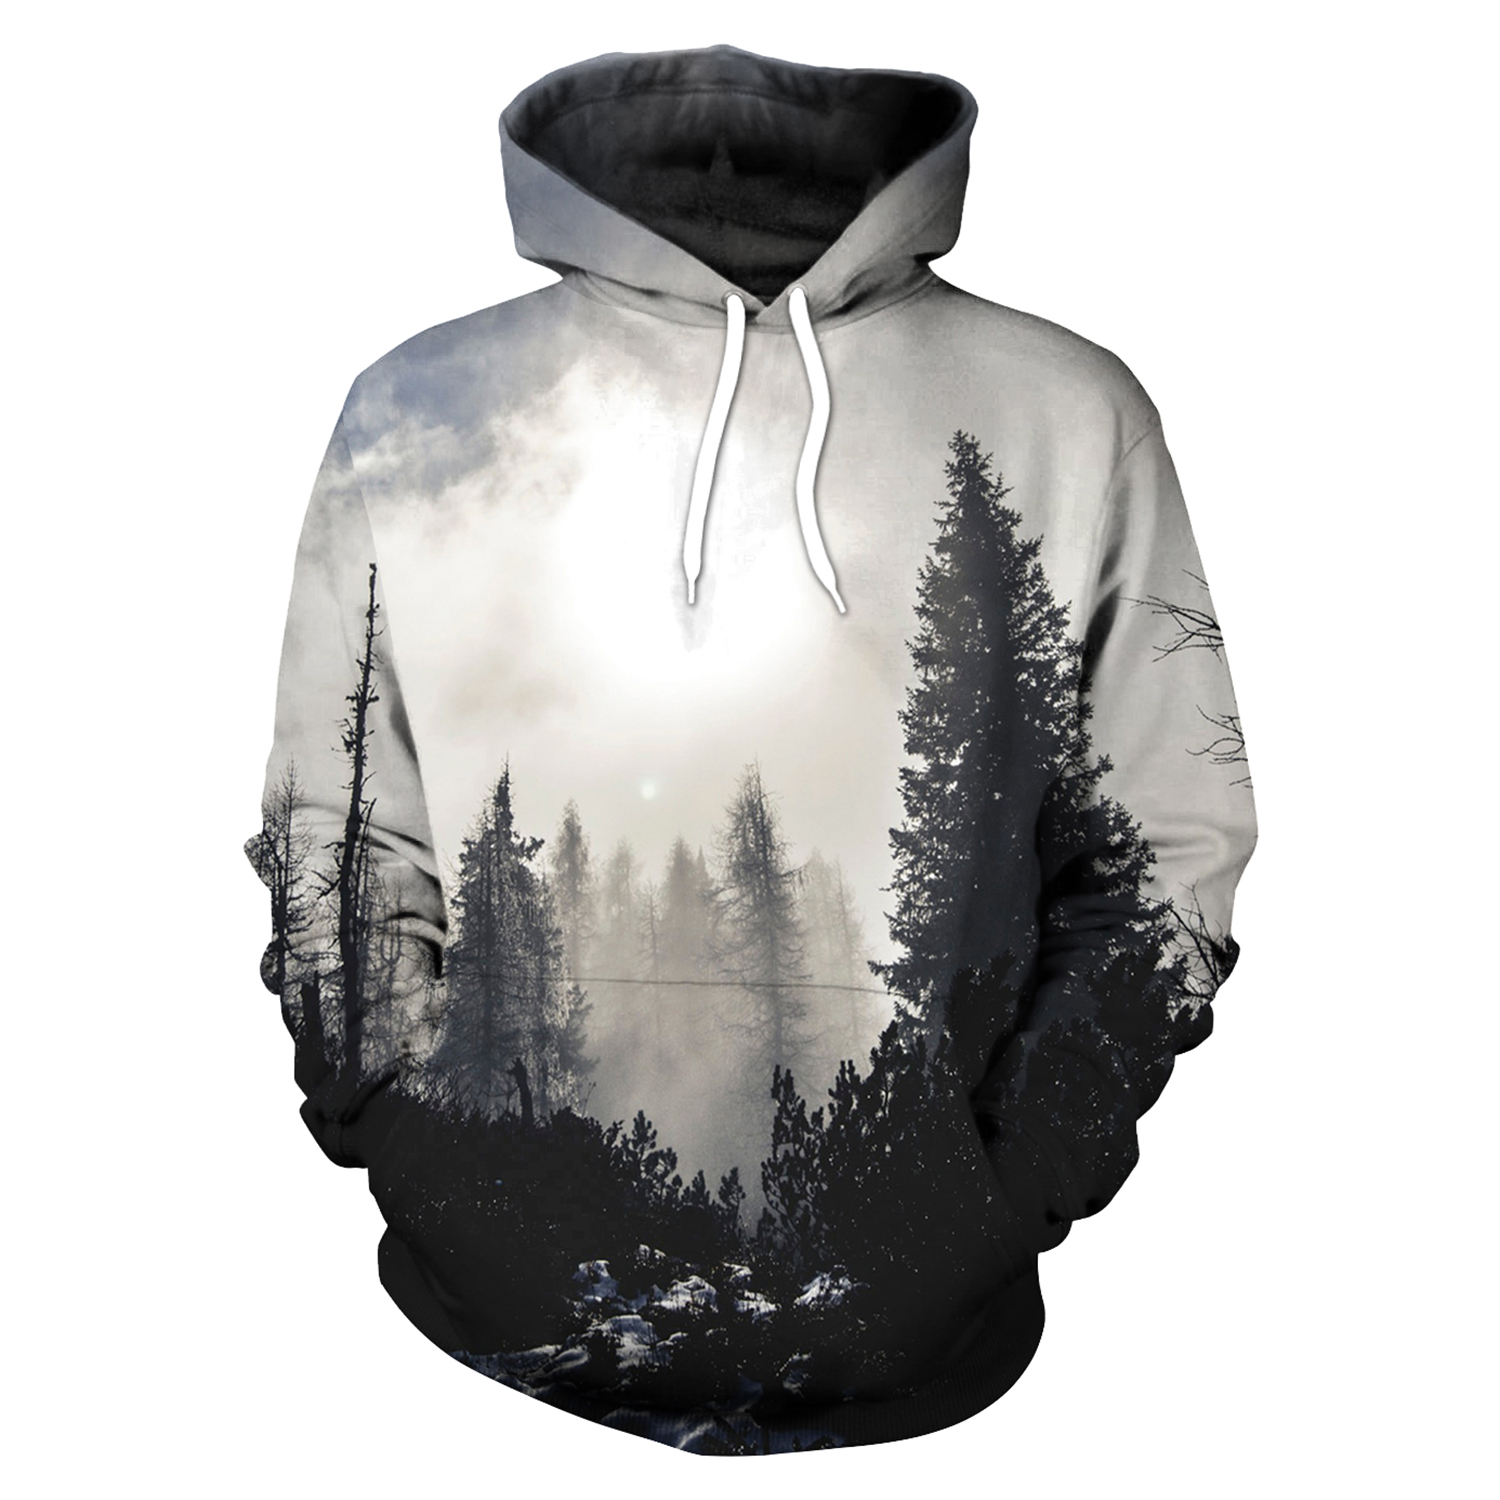 Forest Leaves 3D Print Hoodies with Hat Men Round Neck Loose Sweatshirt Pullover Sudaderas Para Hombre Streetwear Winter Clothes